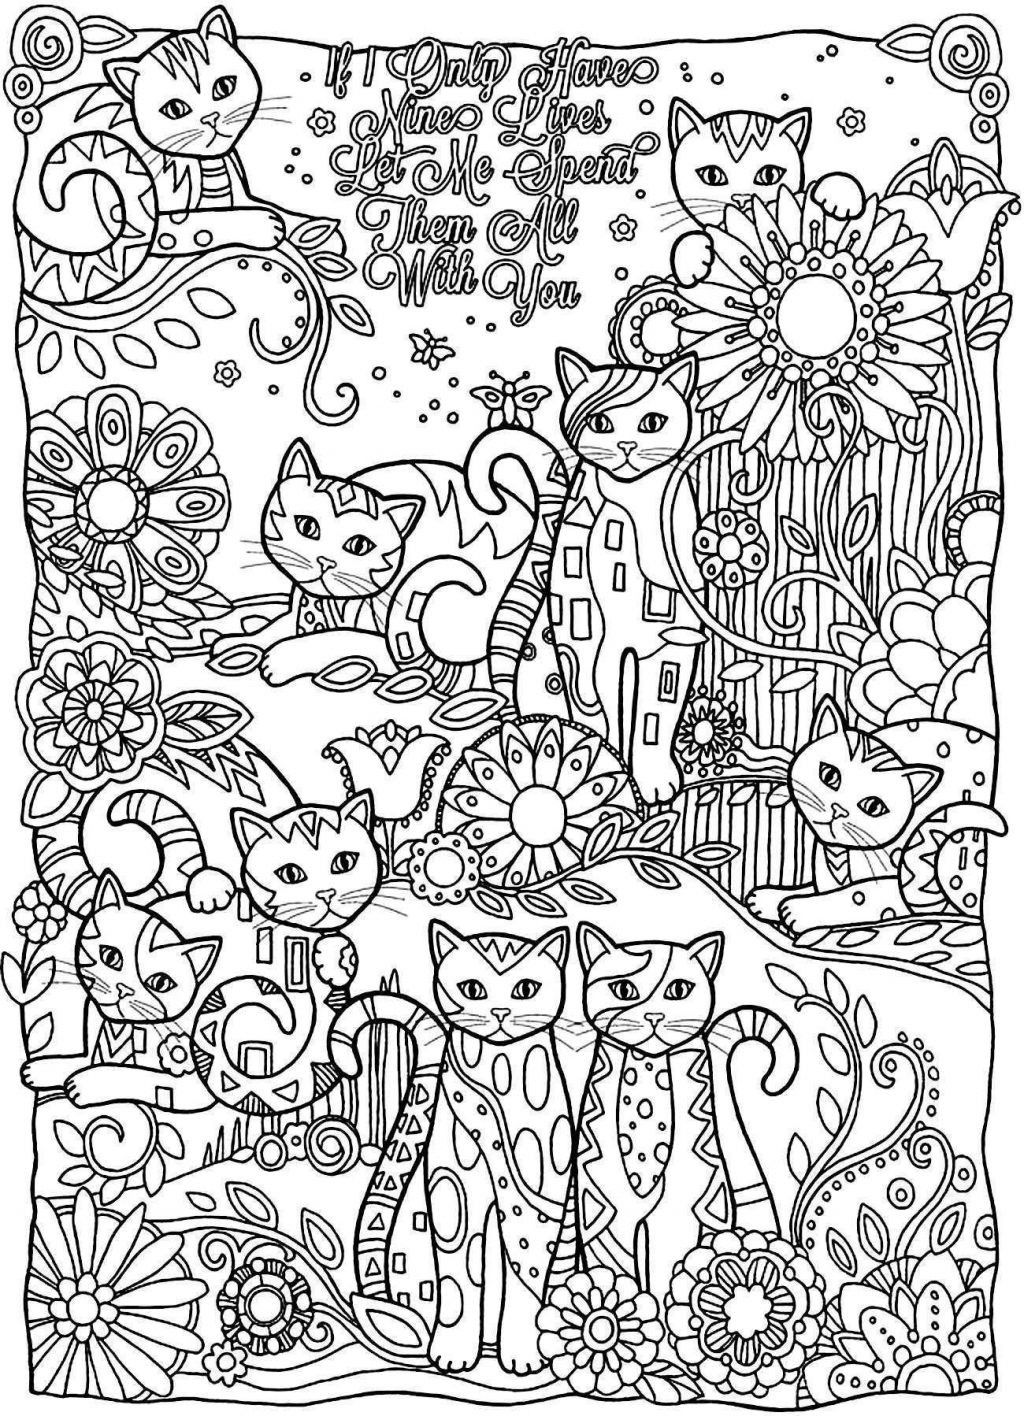 10 Warrior Cat Characters Warrior Cat Generator Warrior Cat Lemons Kits Warrior Cat Unicorn Coloring Pages Coloring Pages Inspirational Bear Coloring Pages